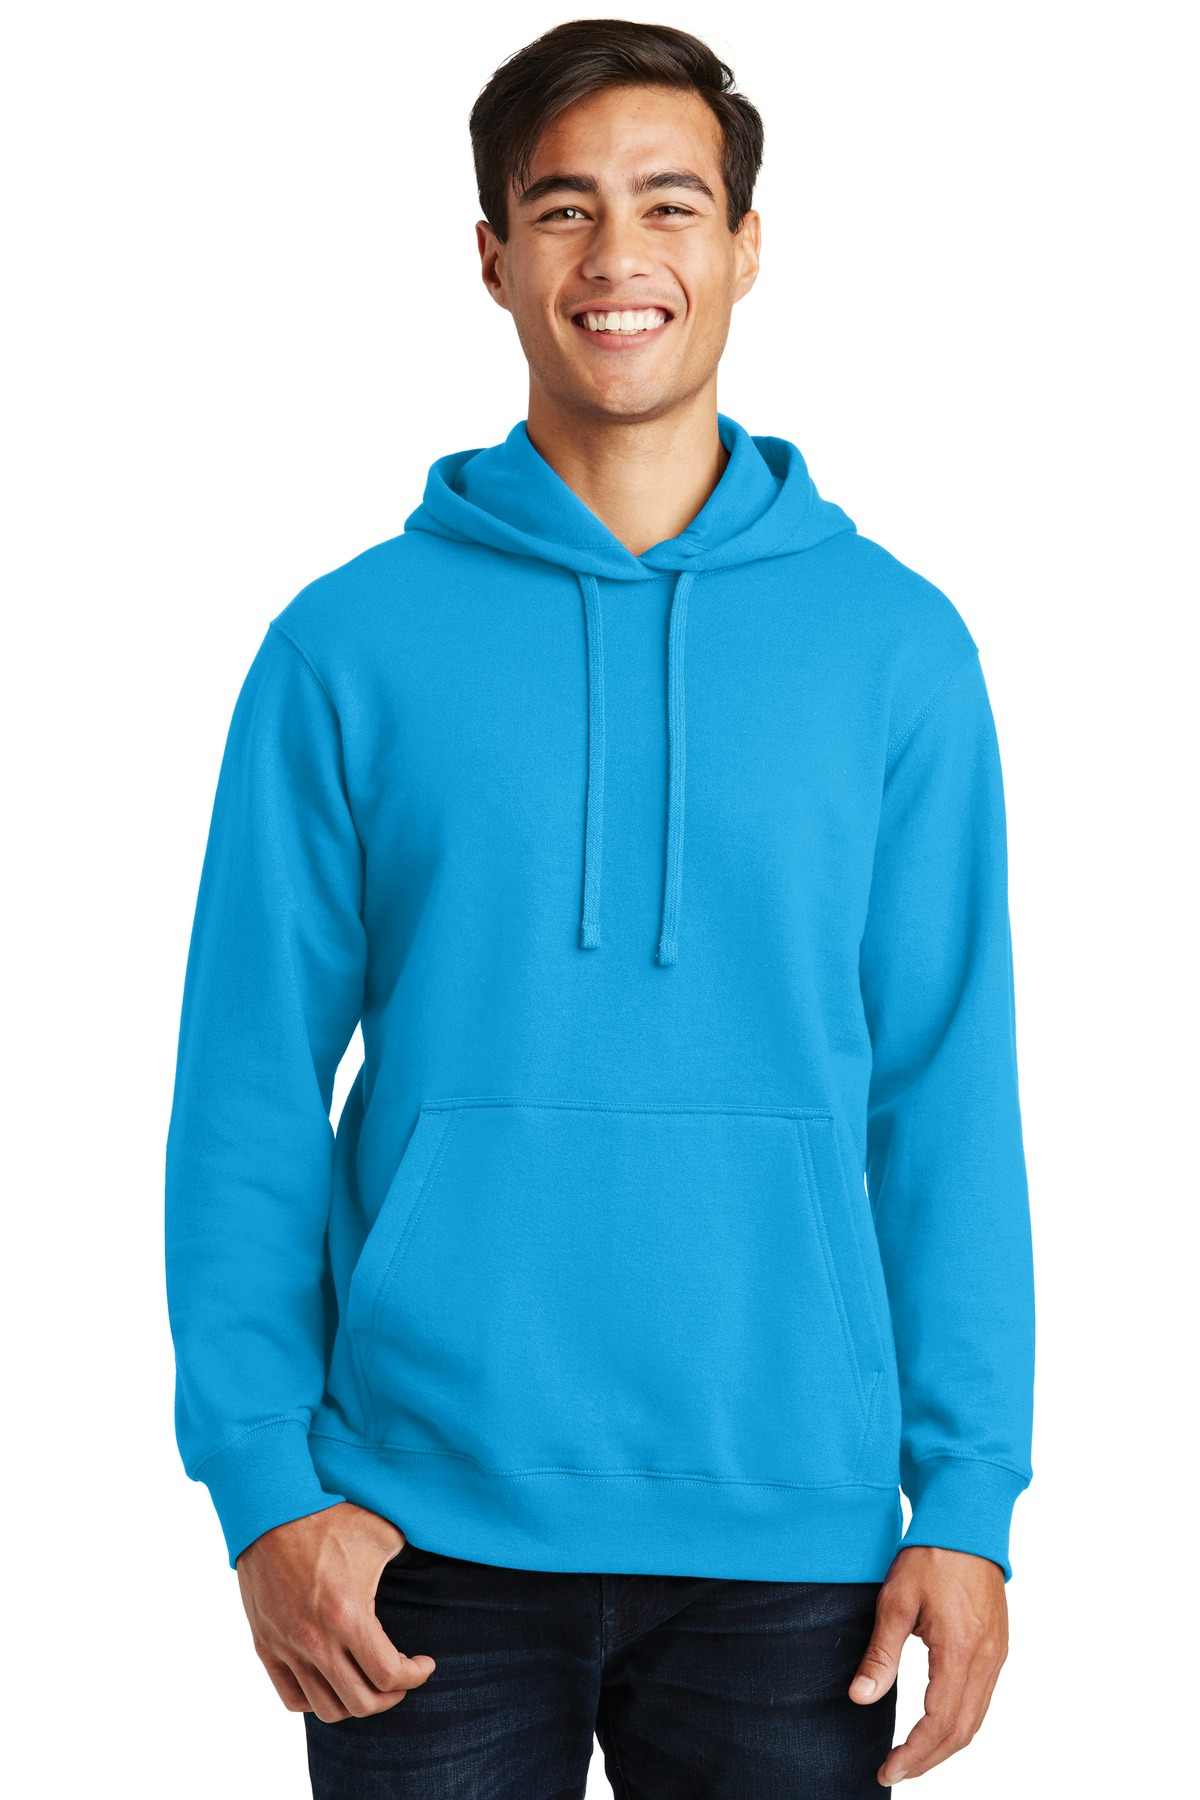 Port & Company Fan Favorite Fleece Pullover Hooded Sweatshirt. PC850H